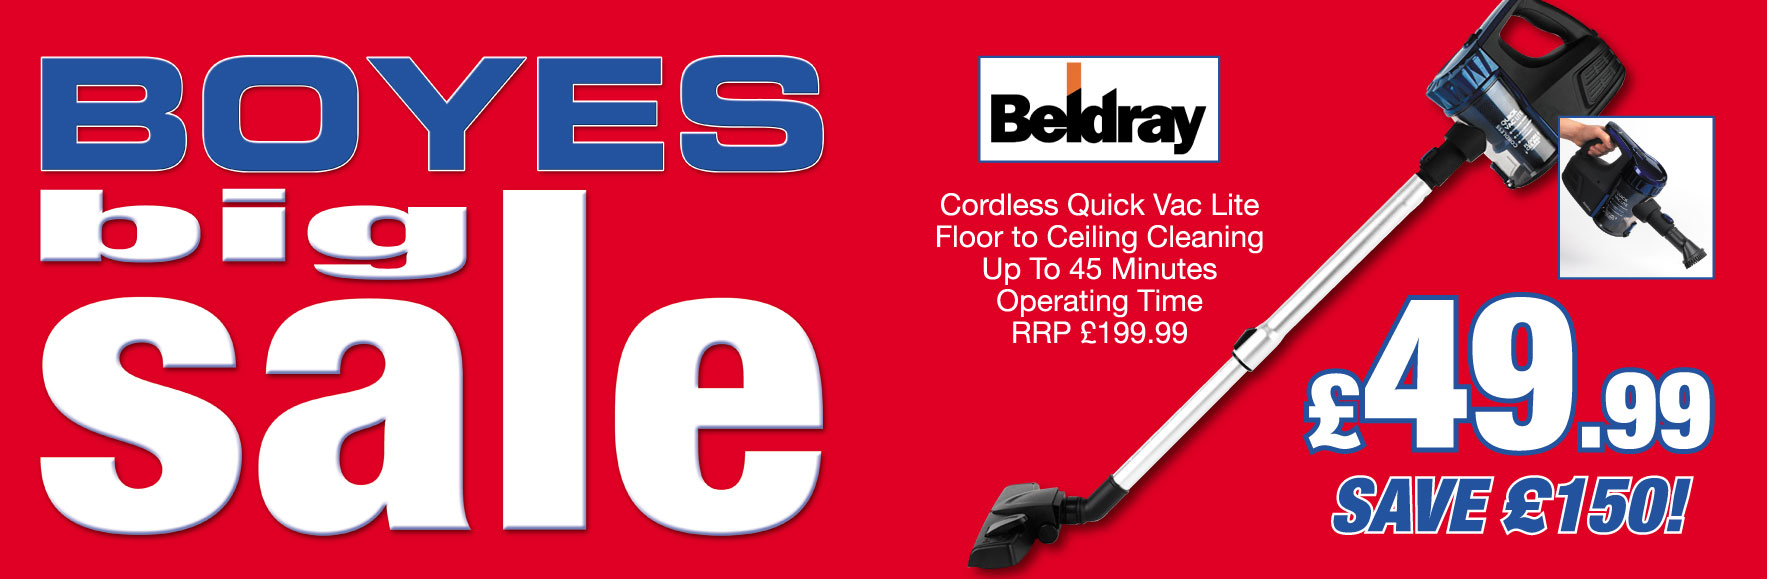 'Beldray' Cordless Quick Vac Lite. Floor to Ceiling Cleaning. RRP £199.99. Now £49.99!